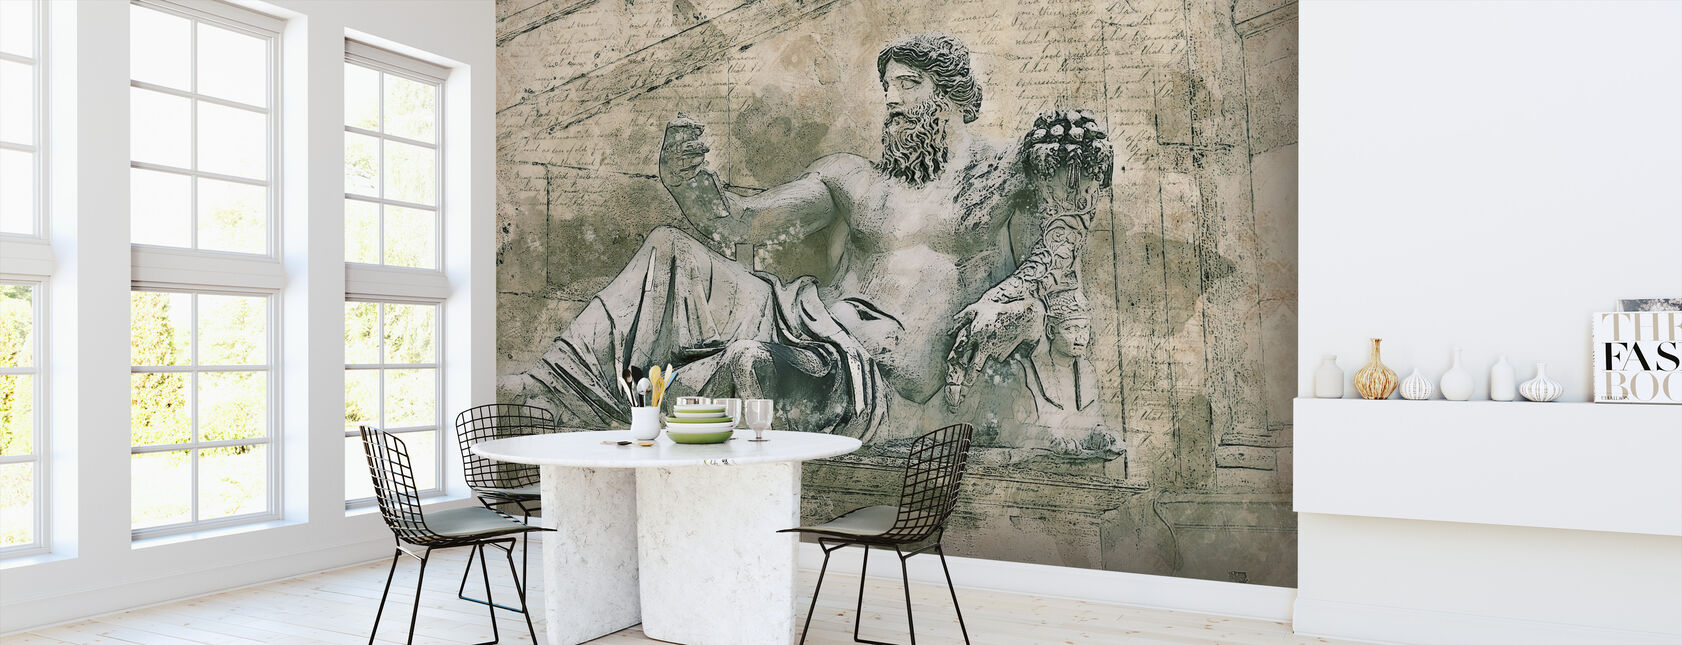 Rome Vintage Statue - Wallpaper - Kitchen